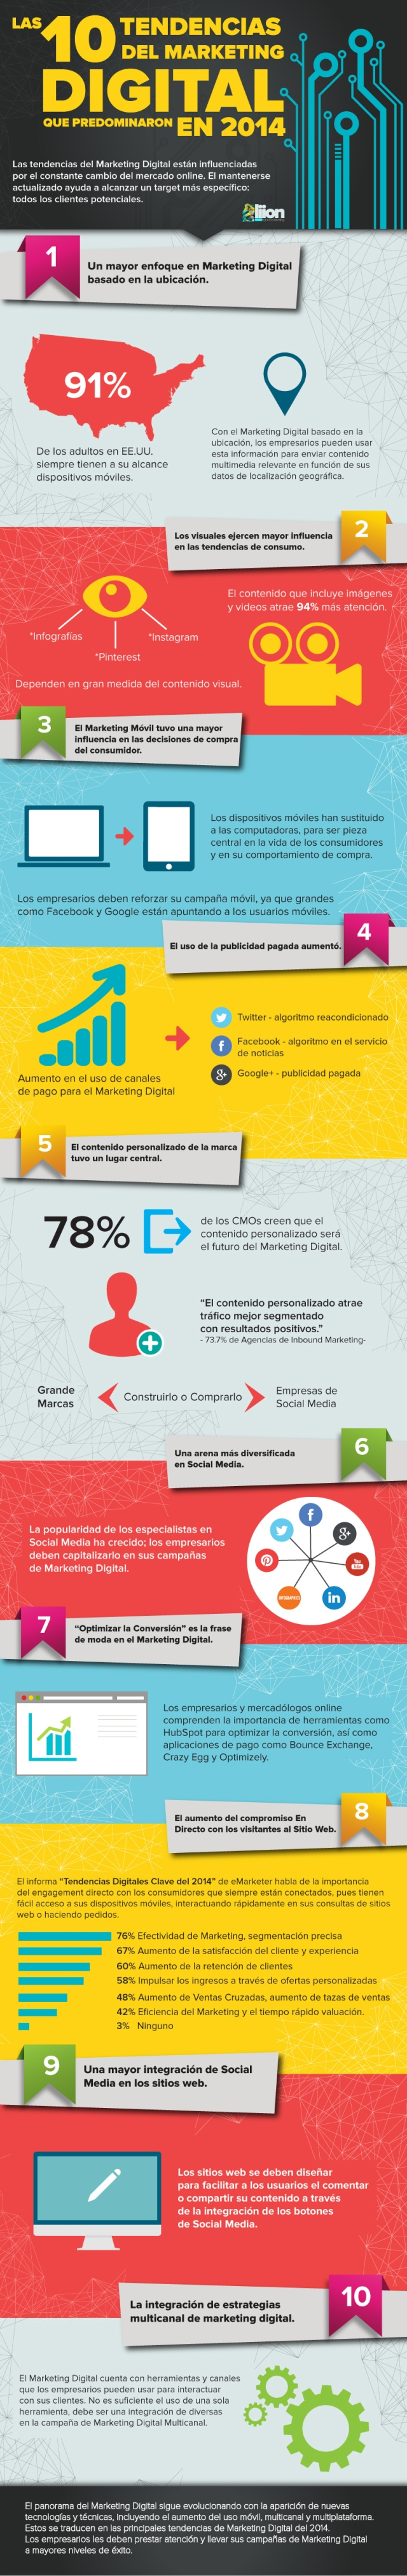 10 tendencias en Marketing Digital que triunfaron en 2014 #infografia #infographic #marketing